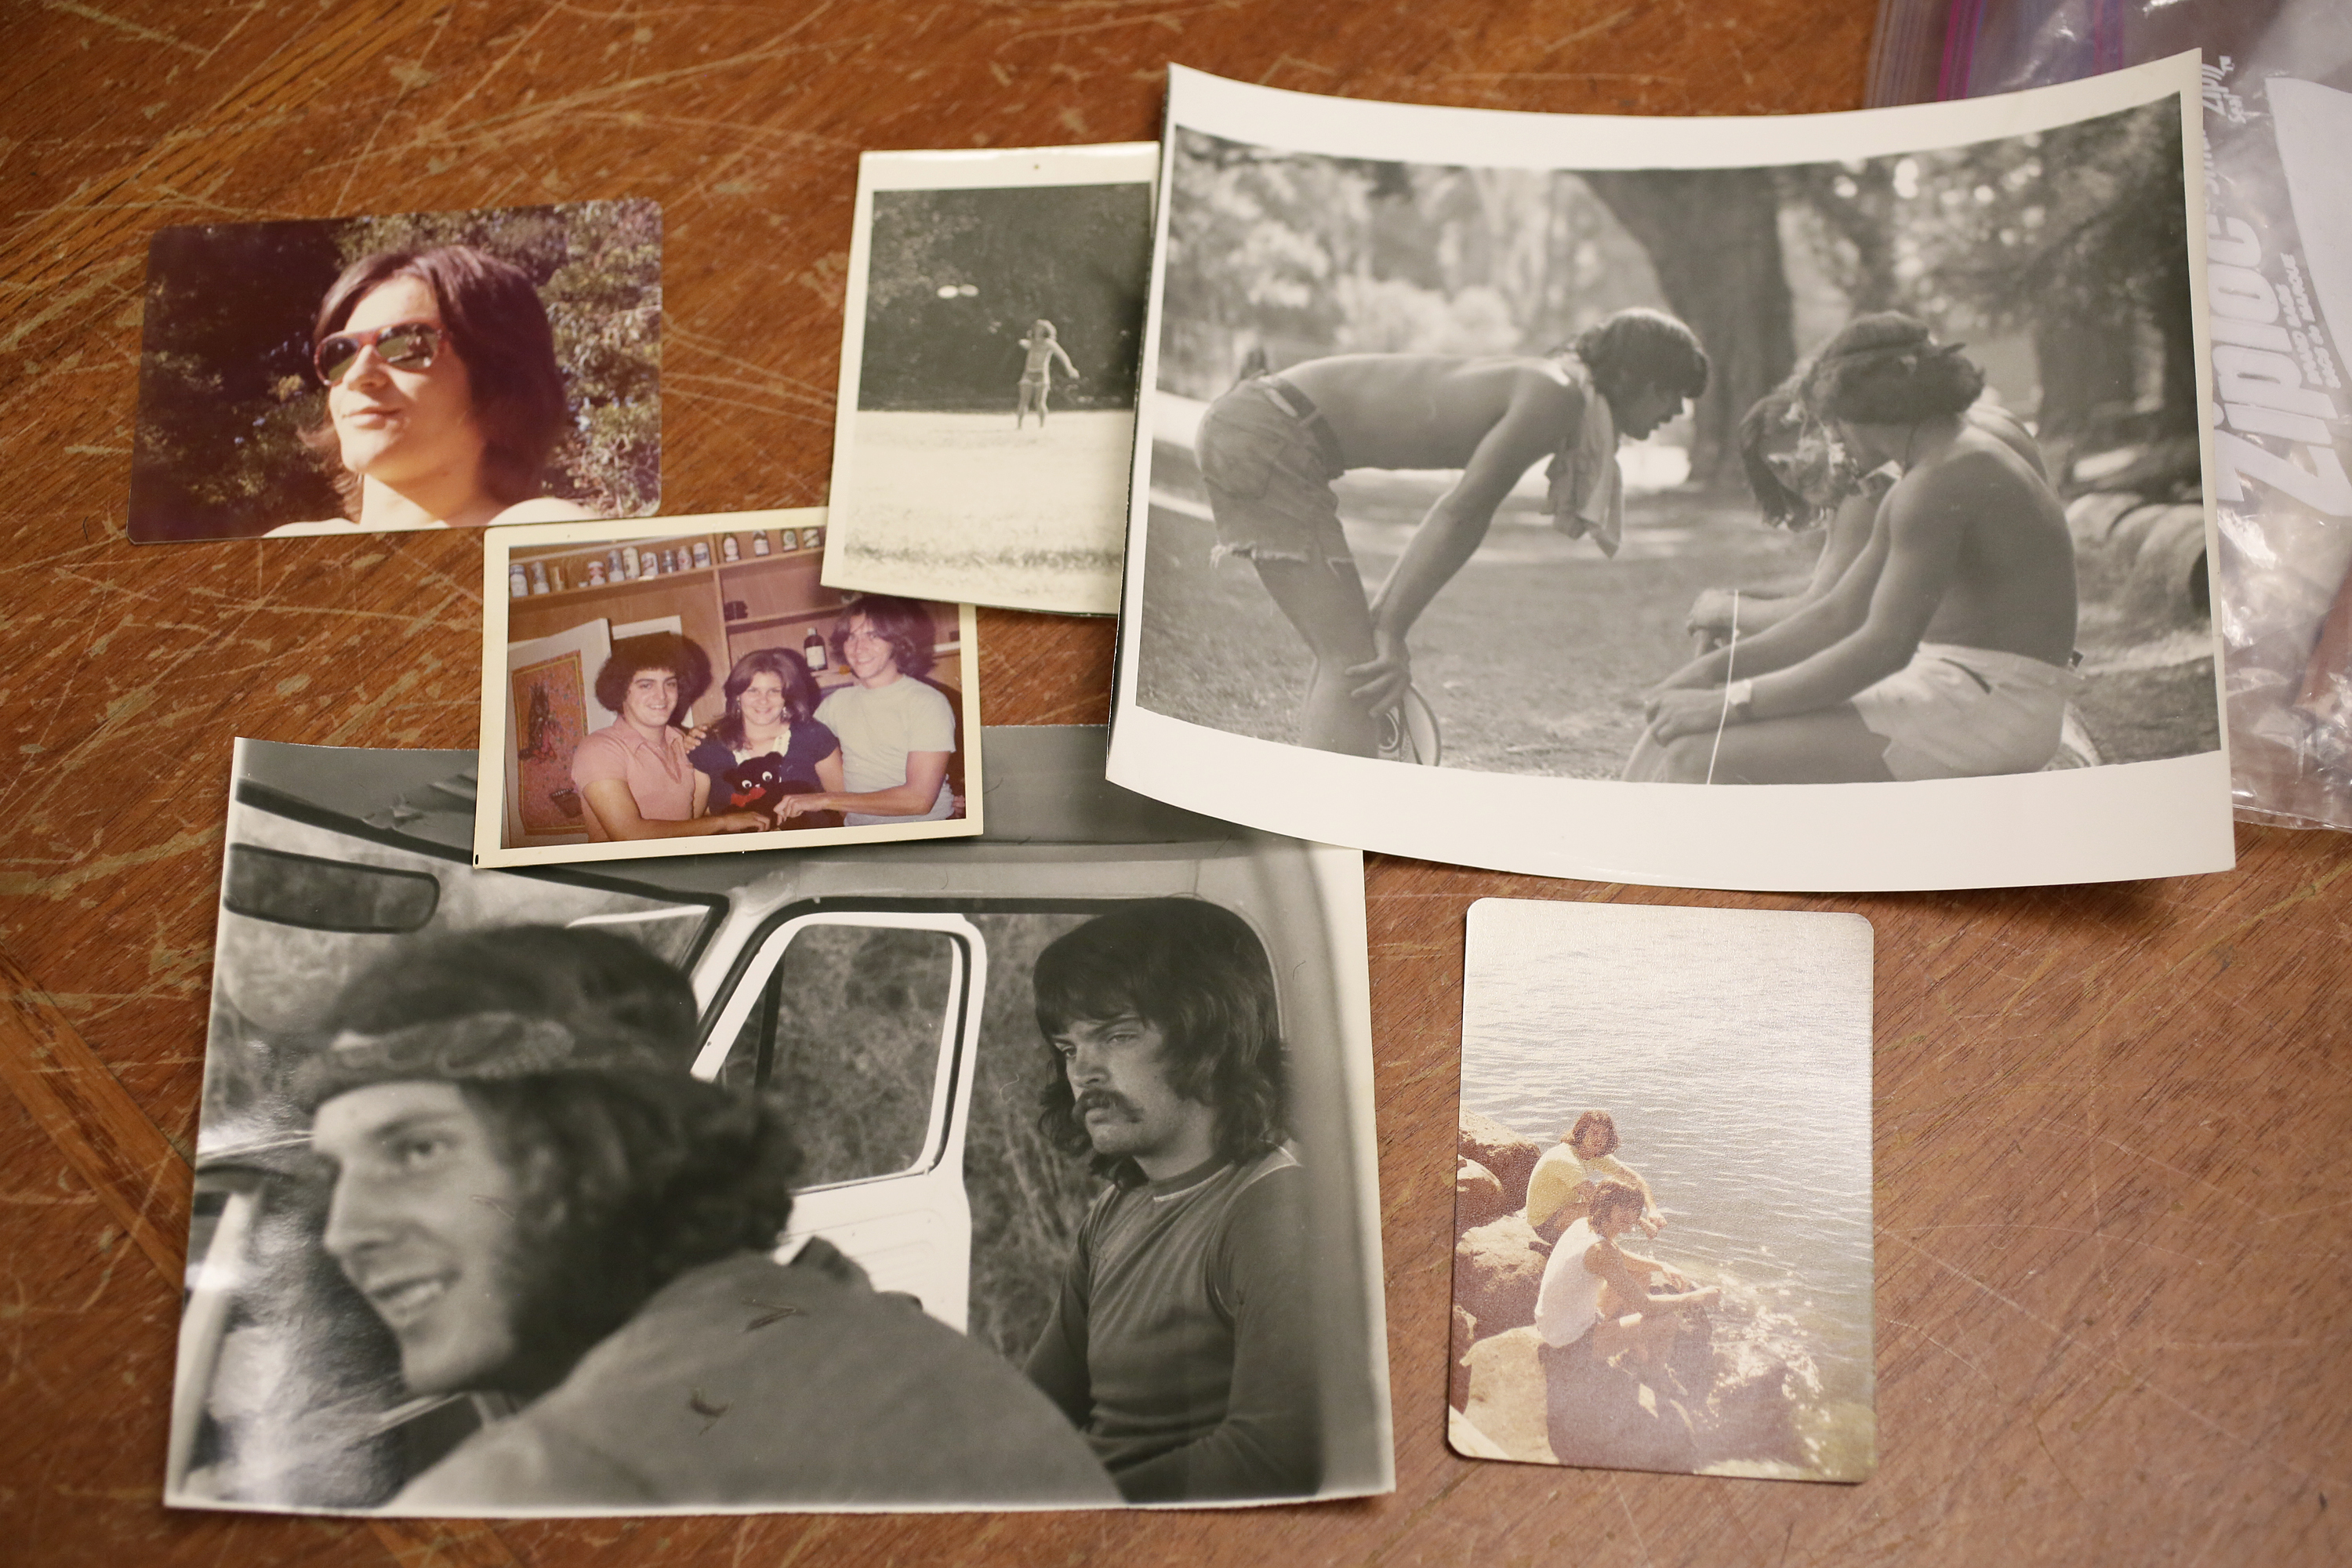 This Friday, April 13, 2018, photo shows a number of photos from the early 1970s showing the Waldos that are stored in their bank vault in San Francisco. Friday is April 20, or 4/20. That's the numerical code for marijuana's high holiday, a celebration and homage to pot's enduring and universal slang for smoking. And five Northern California high school stoner buddies widely credited with creating the shorthand slang for getting high nearly 50 years ago now serve as the day's unofficial grand masters. ()